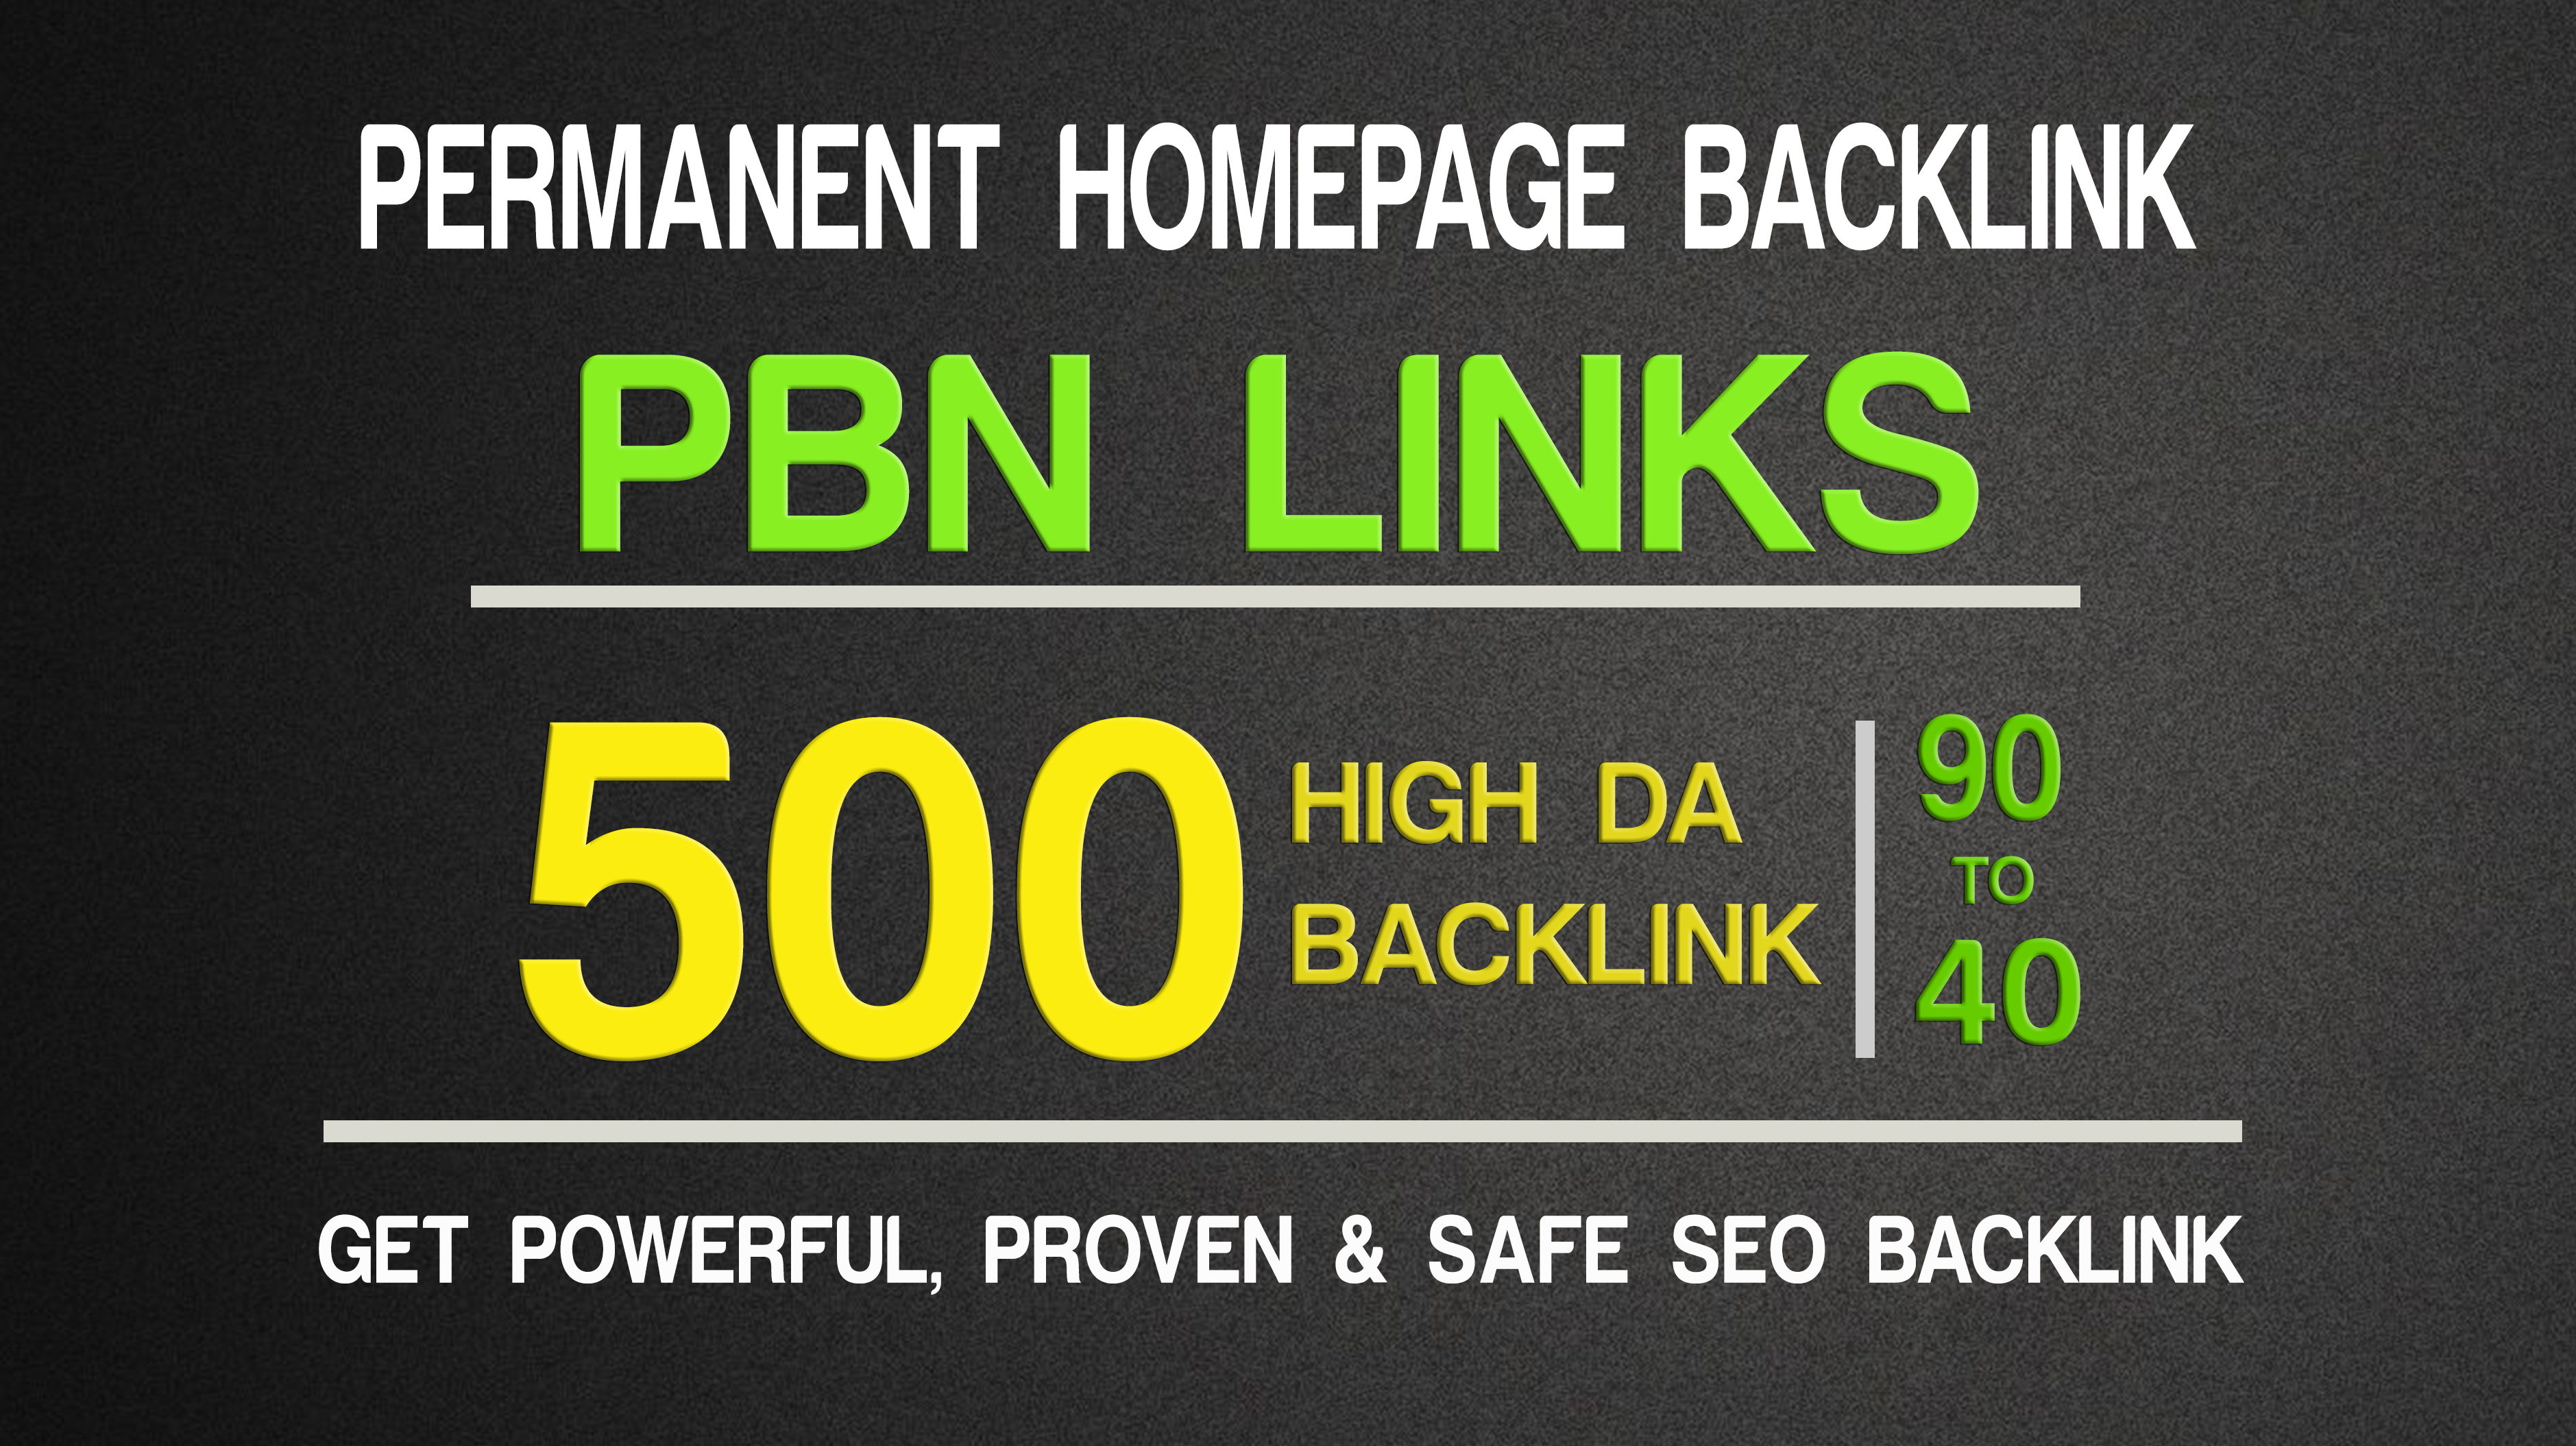 Get Extream 500 Parmanent BacklinK and PBN with high DA PA on your HomePage in unique website